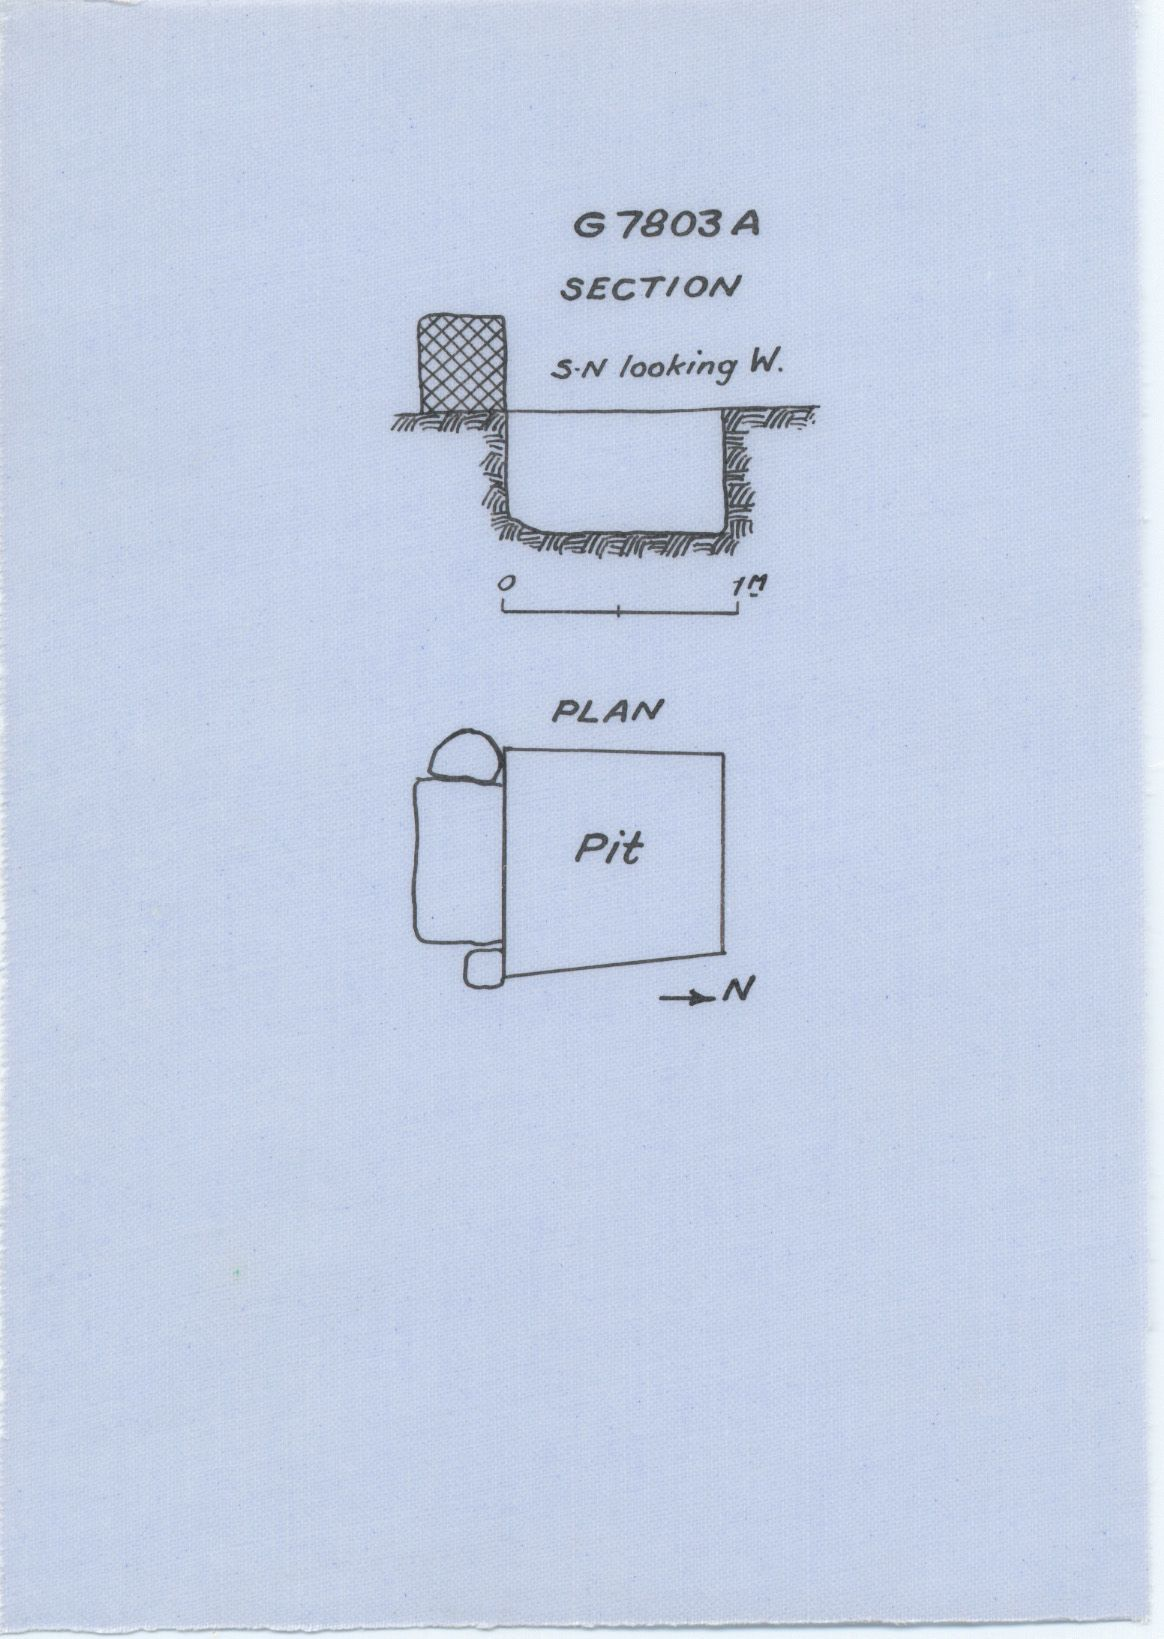 Maps and plans: G 7803, Shaft A